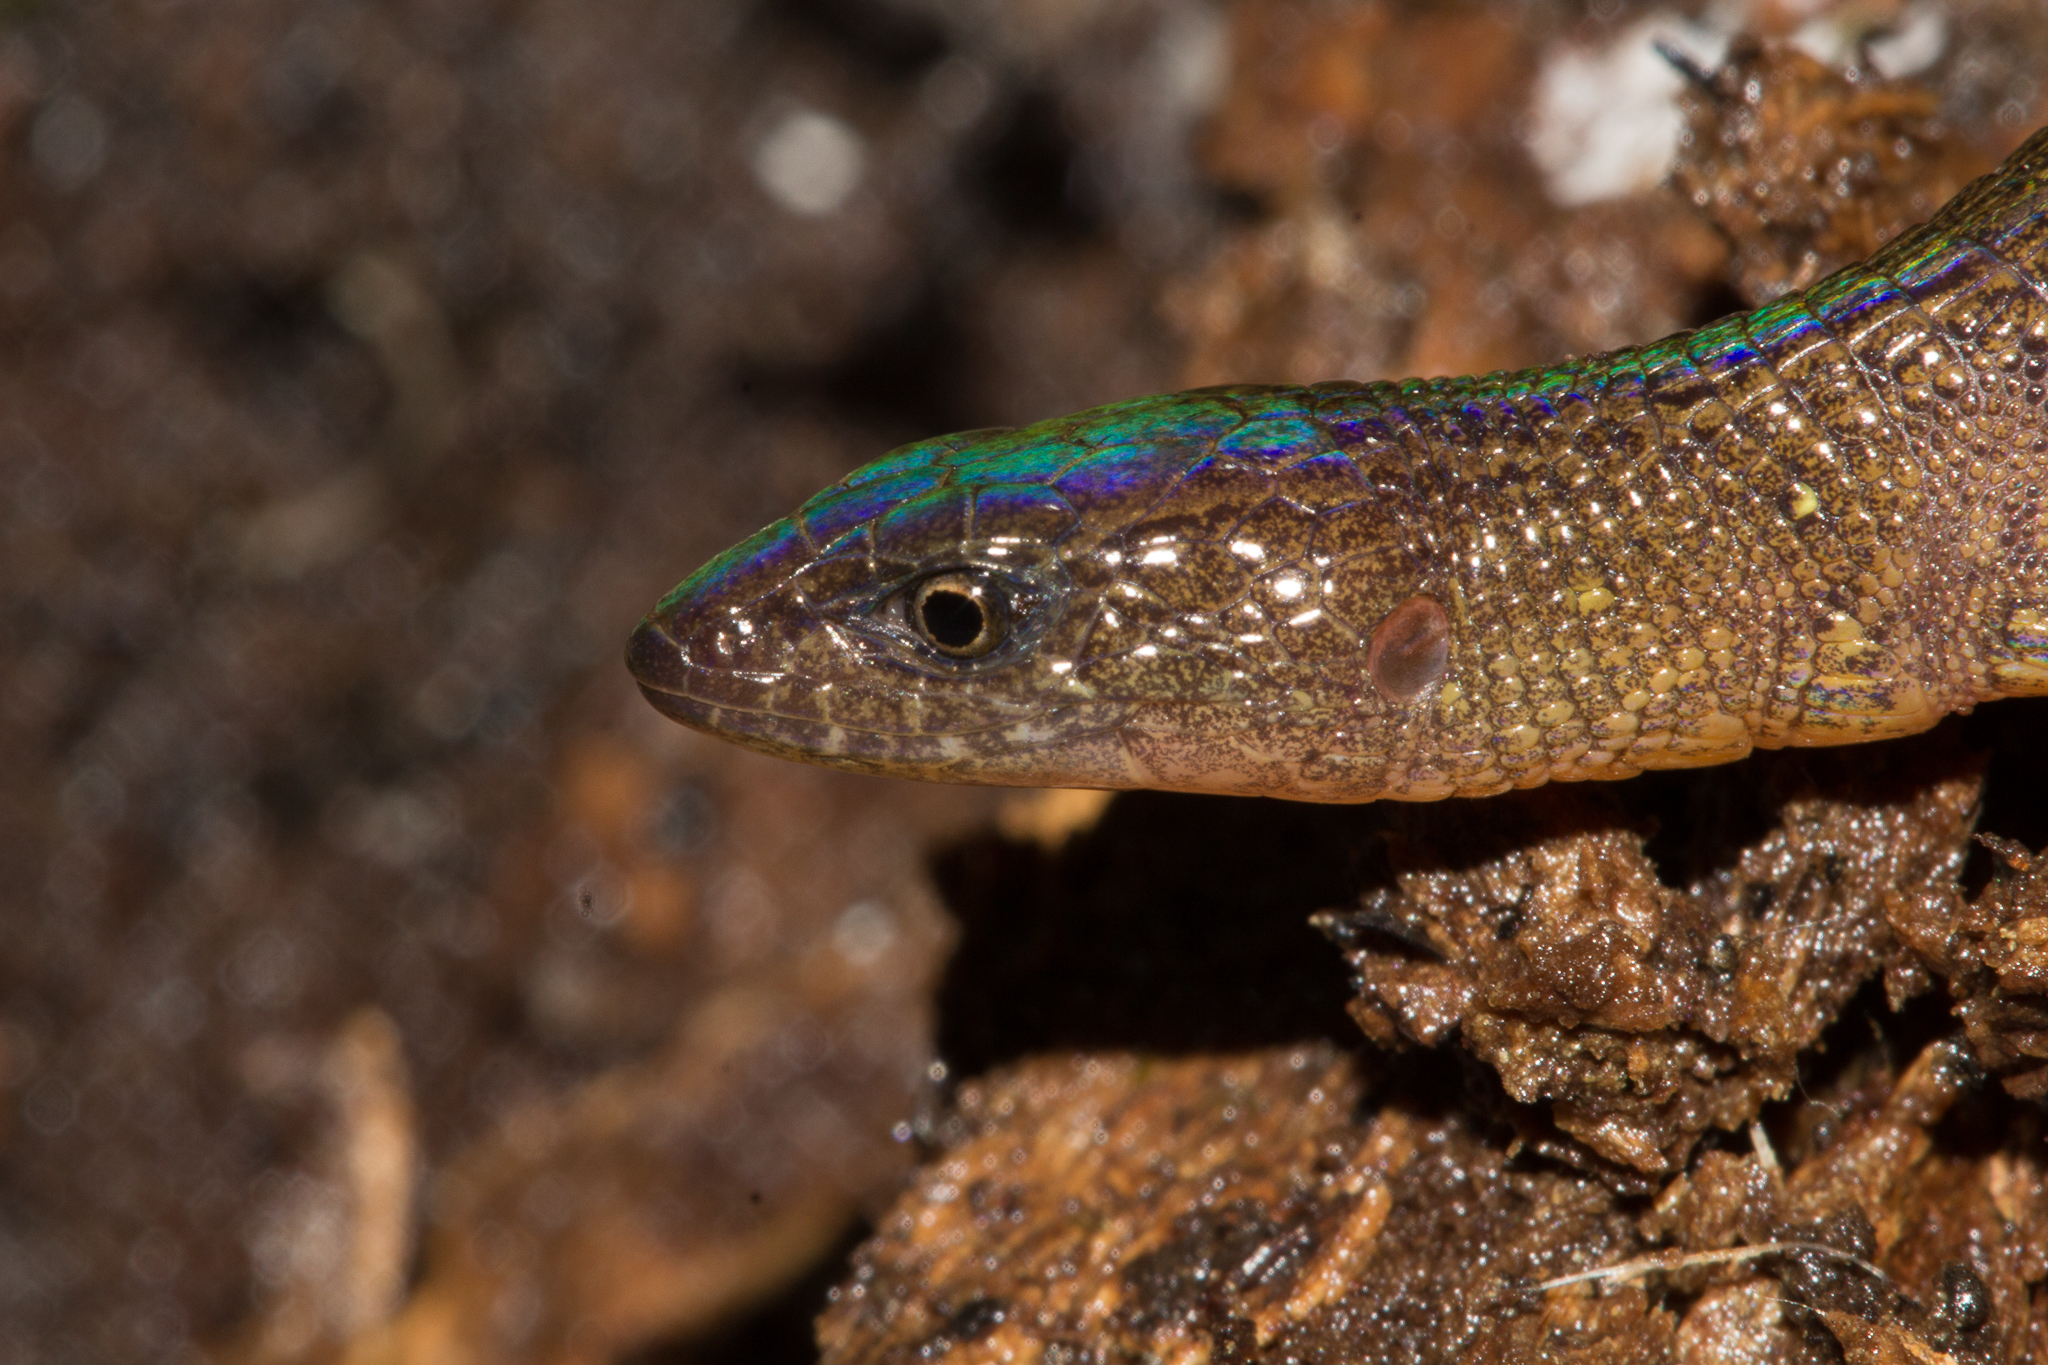 A new species of terrestrial lizard of the Microteiid family collected between Camps 3 and 4. Photo by Santiago Castroviejo